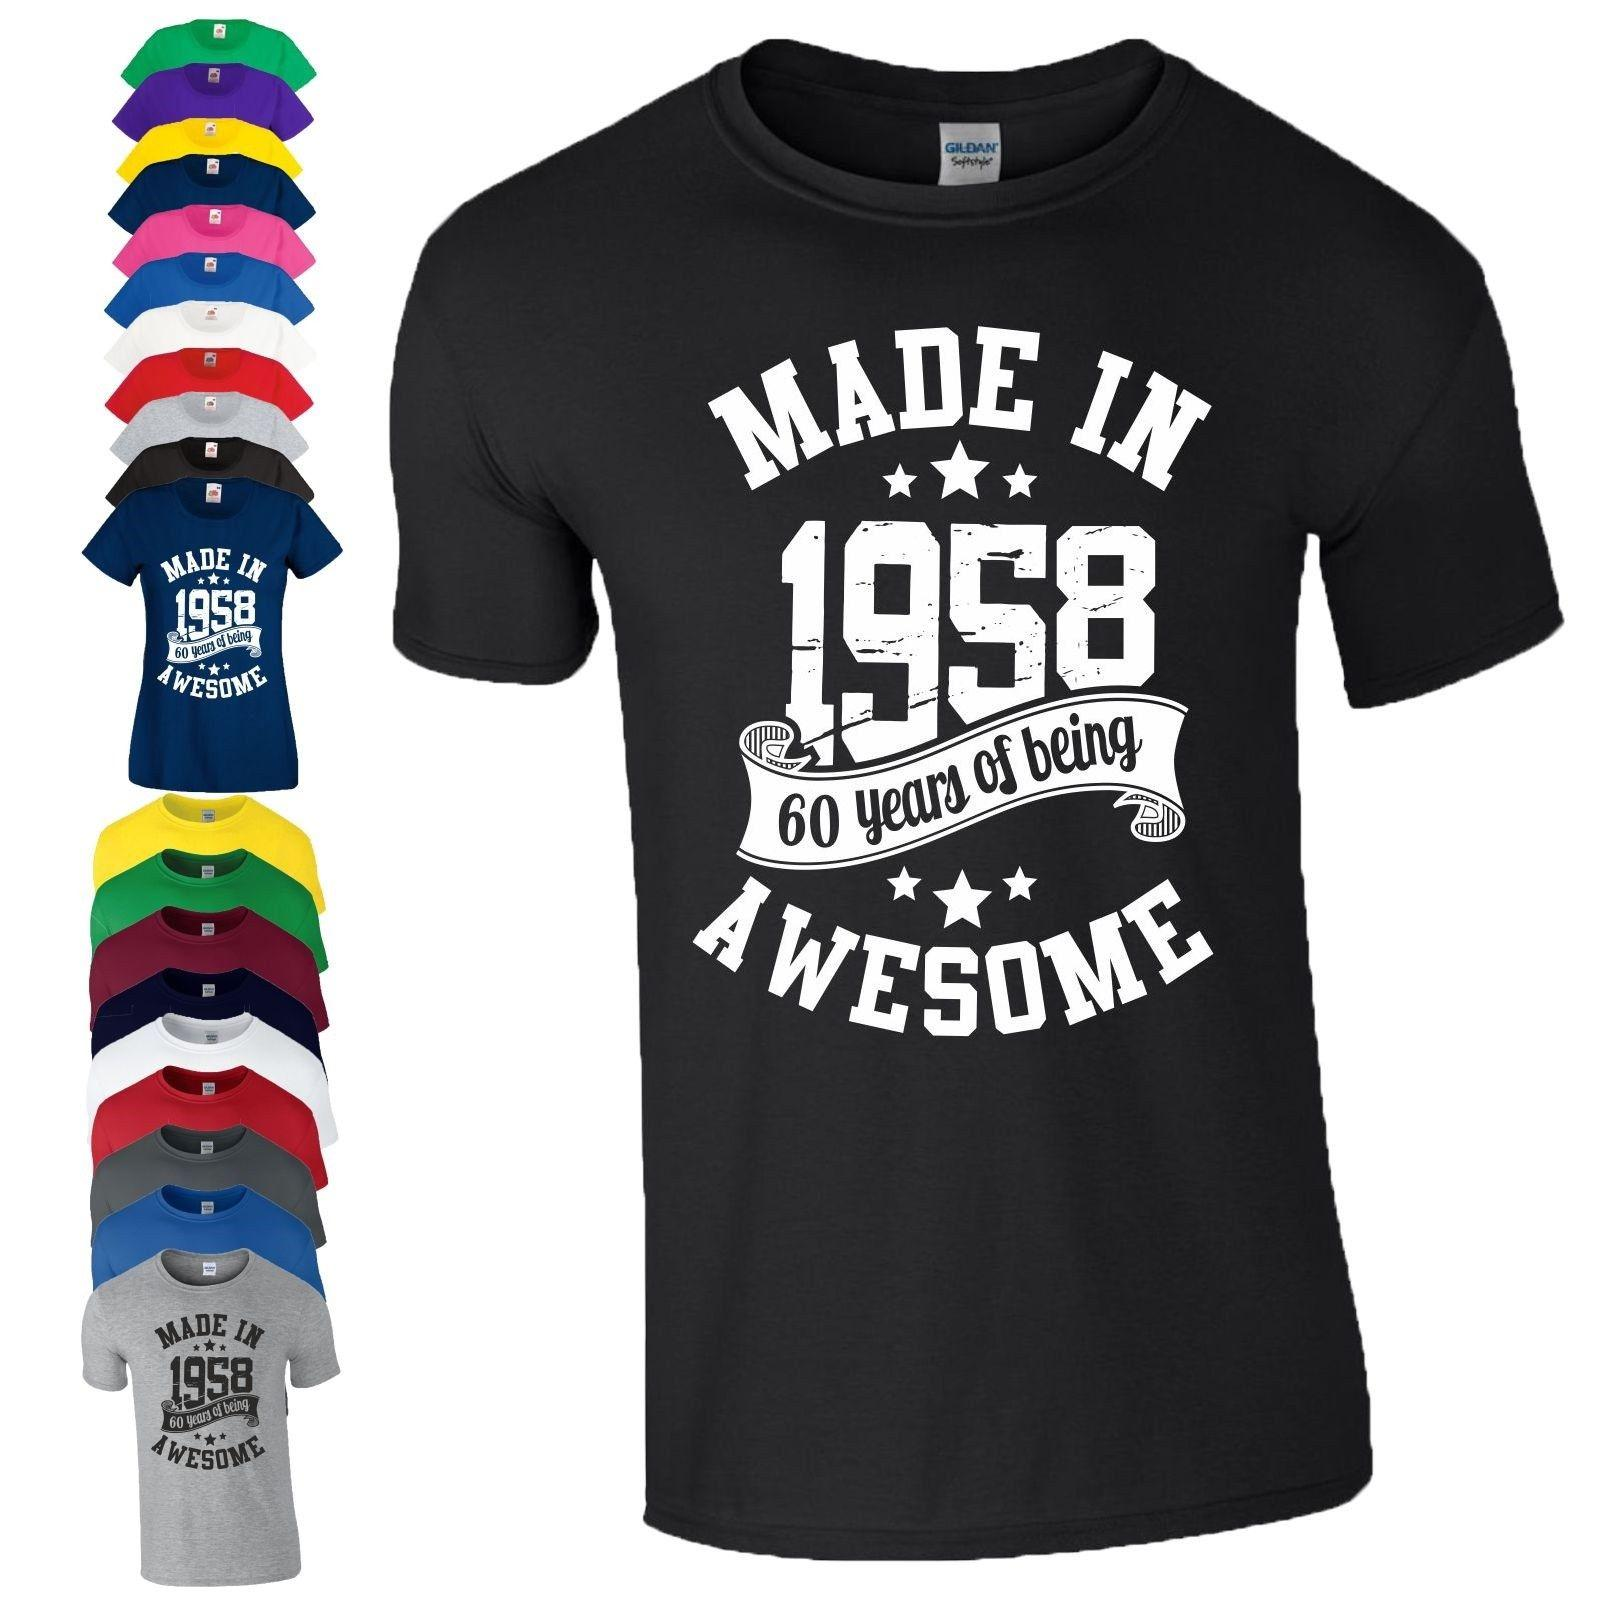 60th Birthday Gift T Shirt Made In 1958 Being Awesome Age 60 Years Mens Ladies Find A Shirts From Bstdhgate05 1101